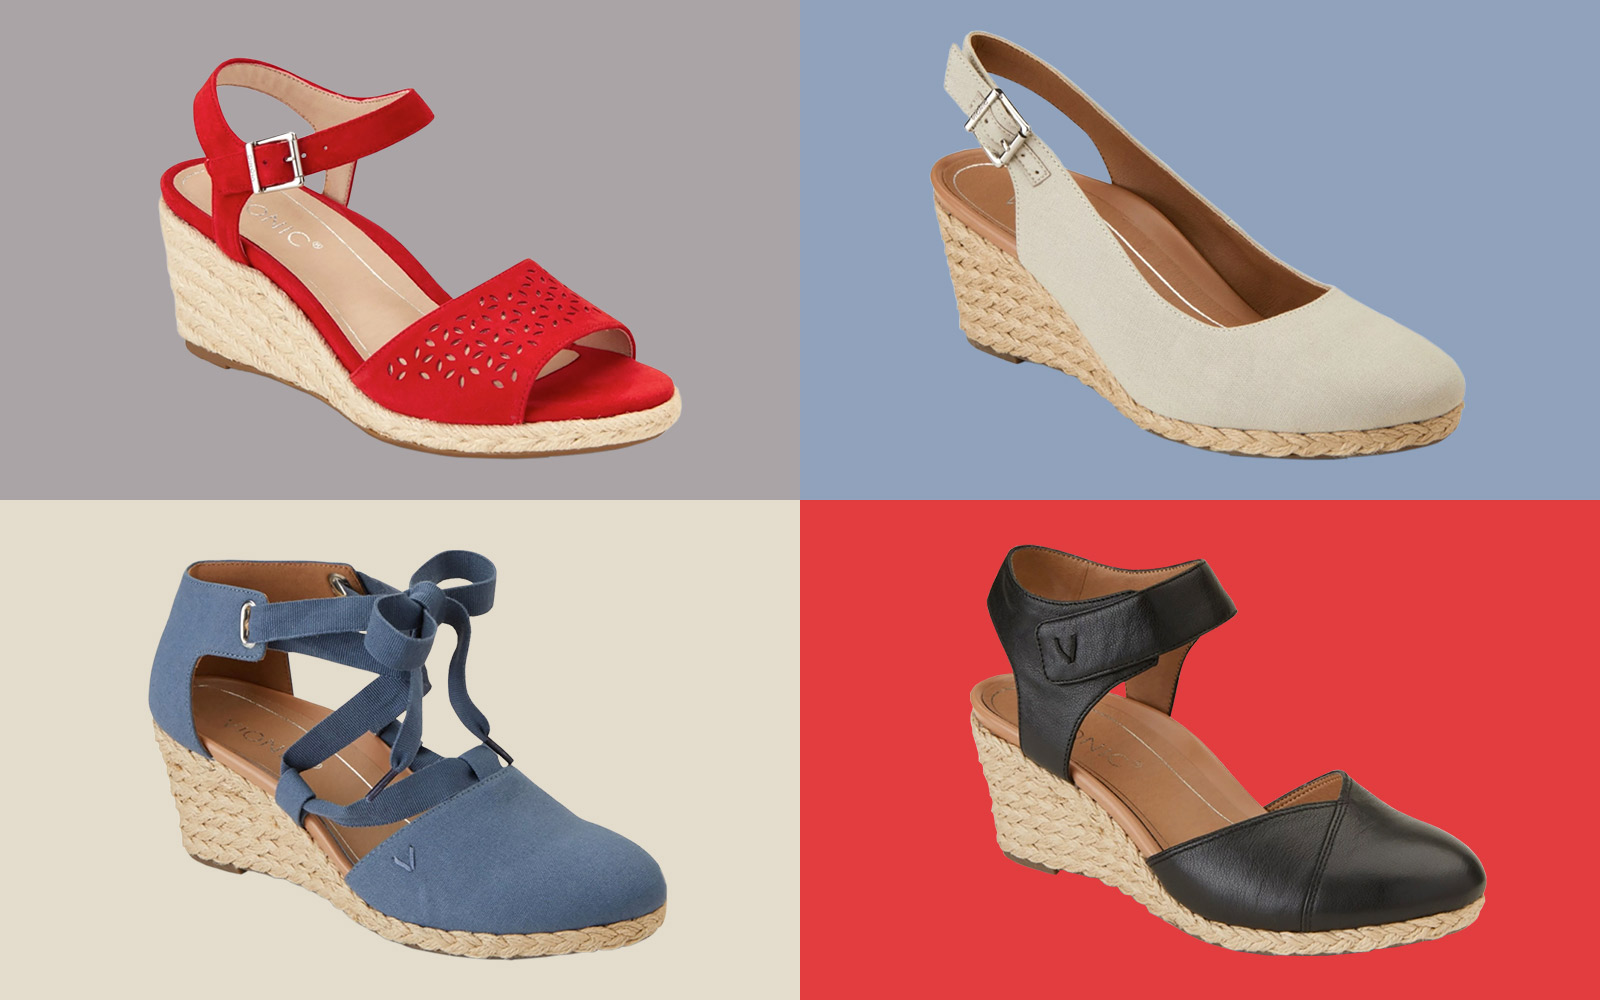 e0aecbf98739 This Podiatrist-designed Shoe Brand Just Launched the Cutest Line of  Espadrilles